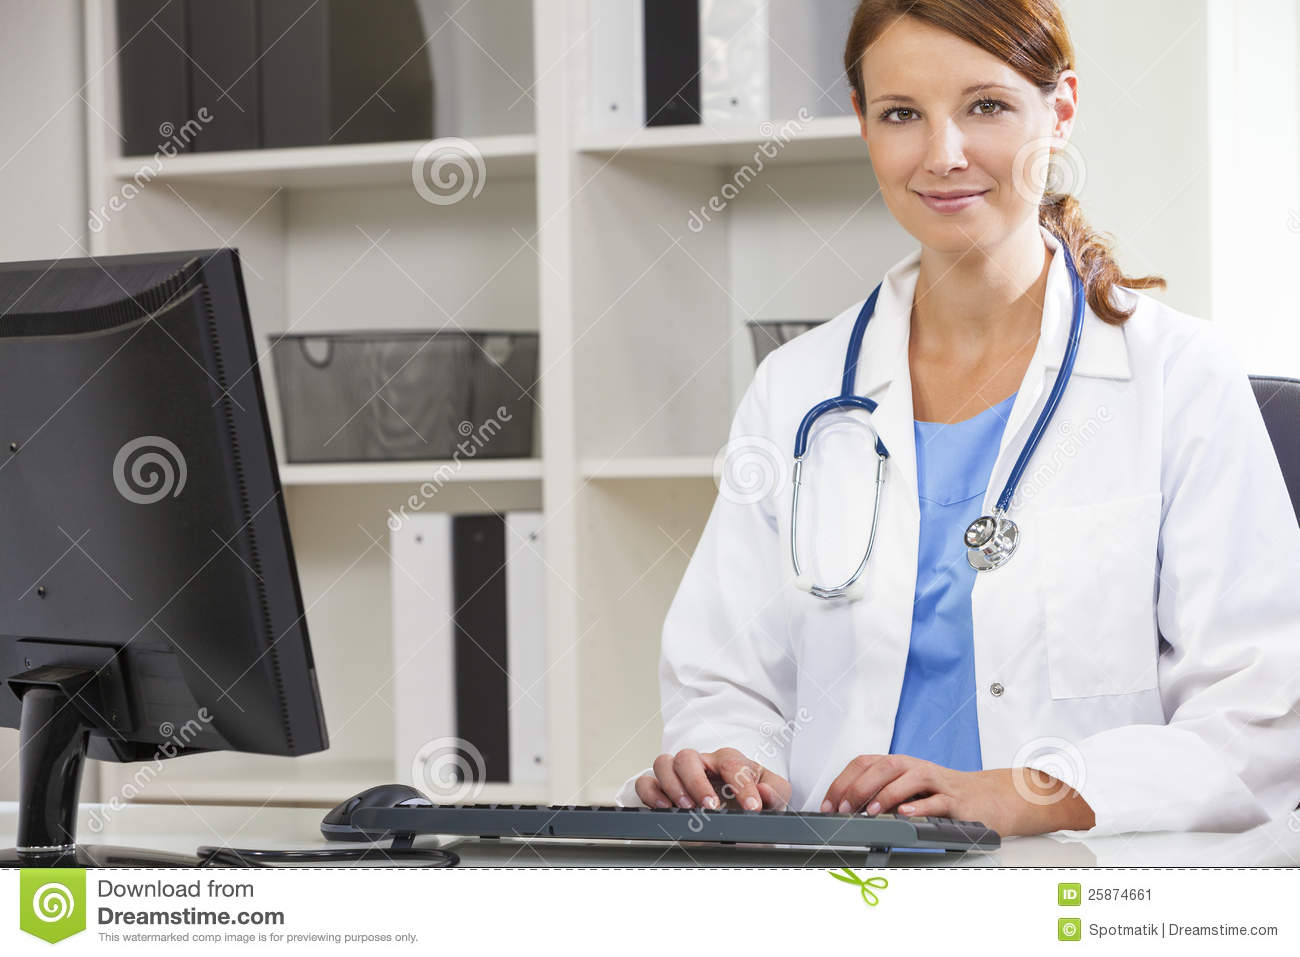 Computer in hospital clipart clip download Female Woman Hospital Doctor Using Computer Stock Image - Image ... clip download